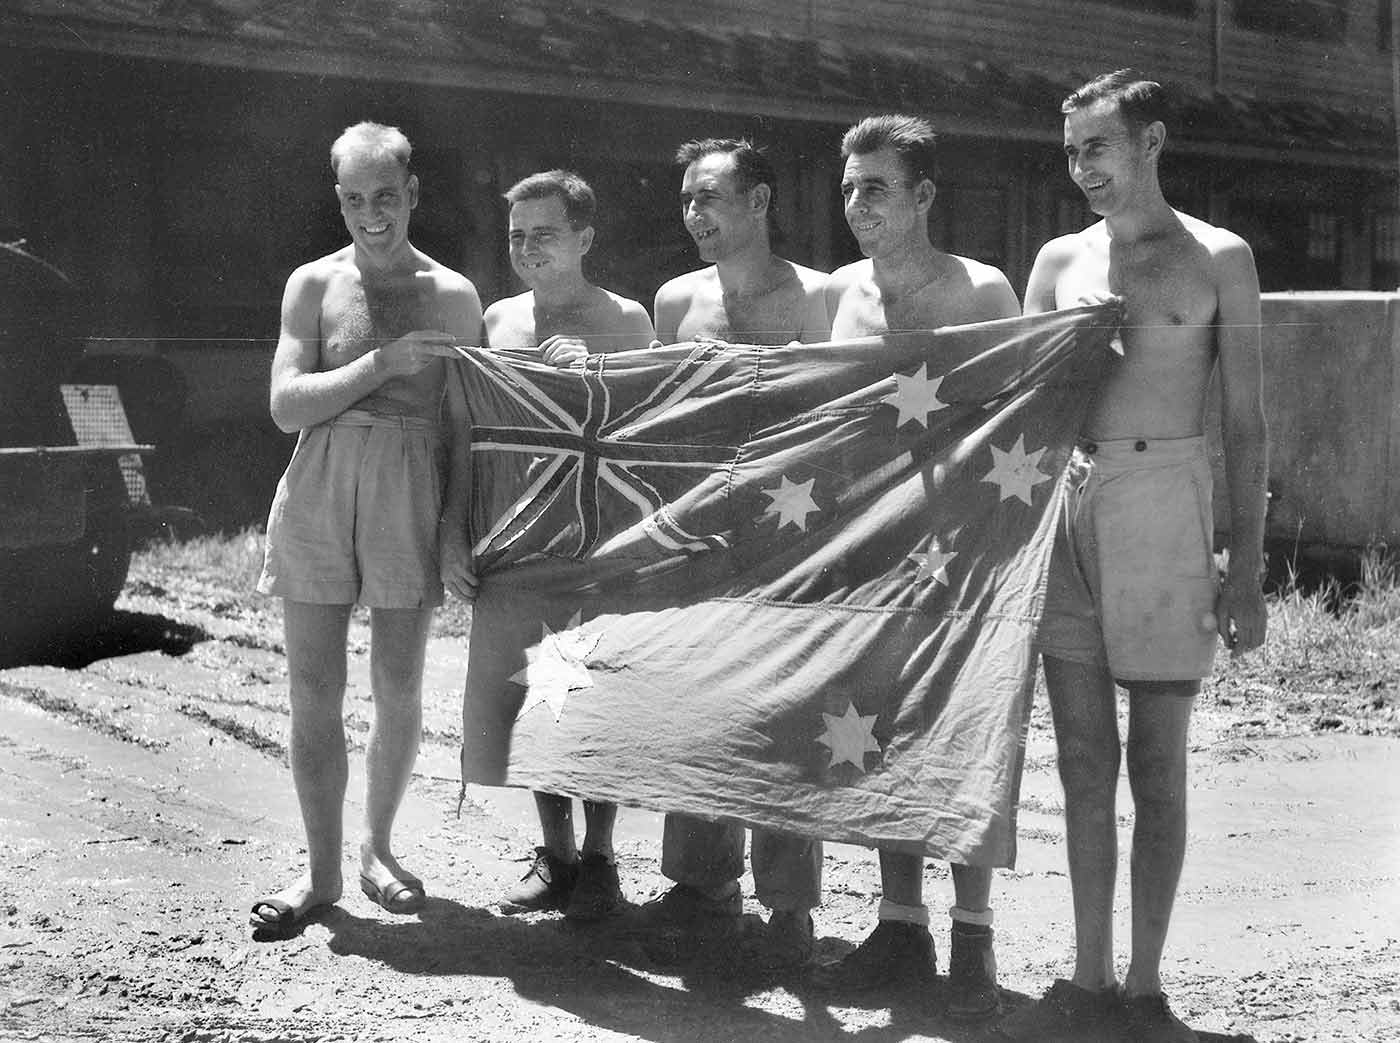 A black and white photograph showing five men standing behind a homemade Australian flag. The men are shirtless.  - click to view larger image